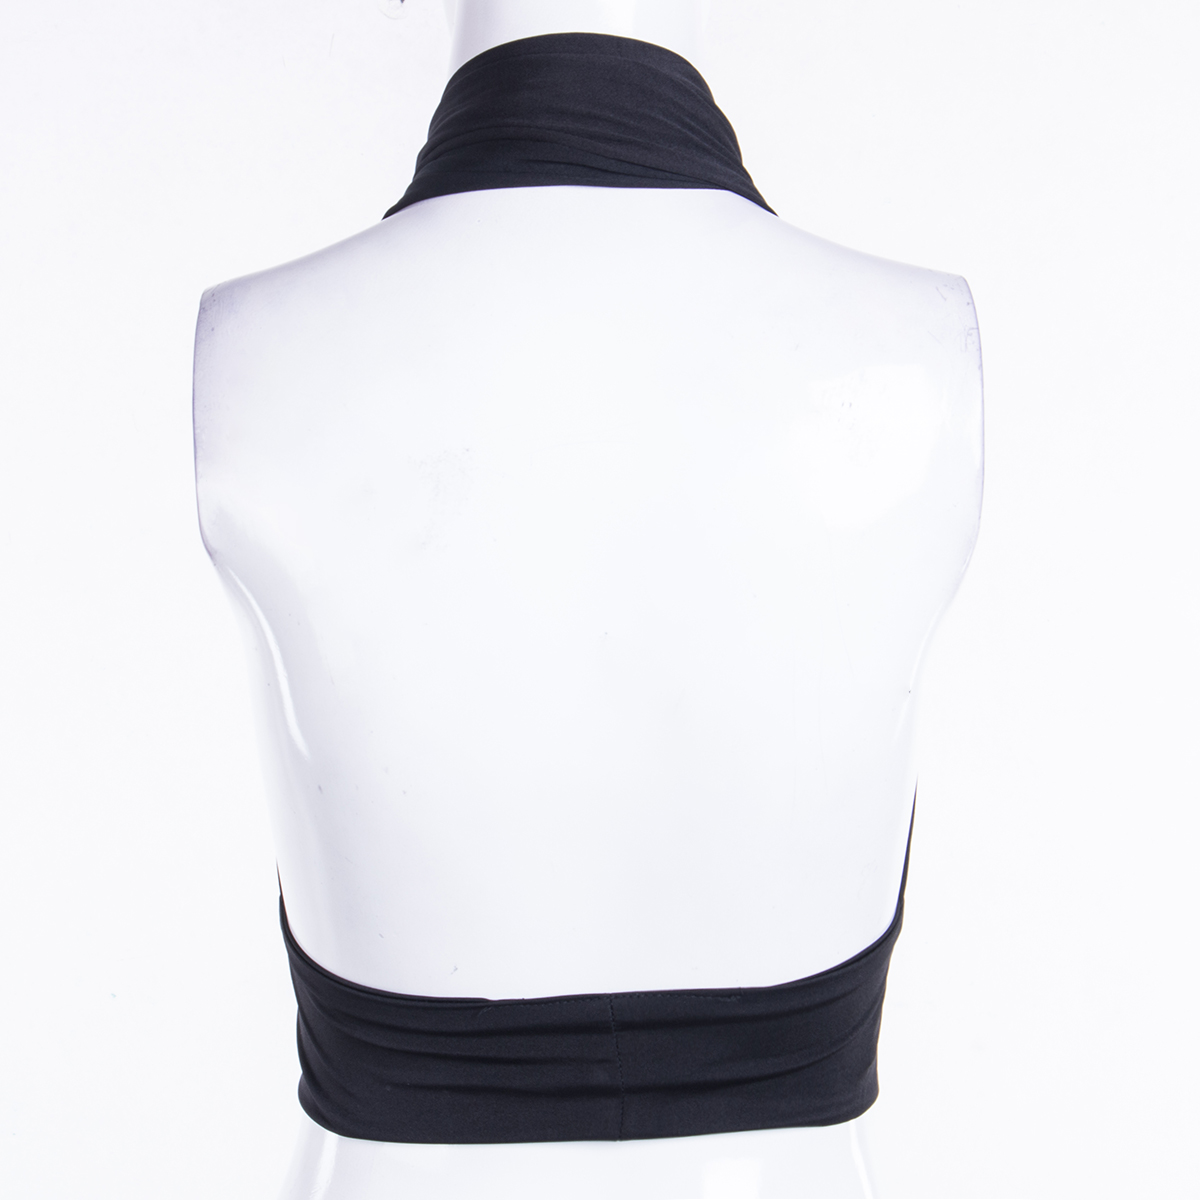 Chic Fashion Cross Halter Sexy Crop Tops for Women Sleeveless Backless Streetwear Hollow Cropped Feminino Top 2021 5